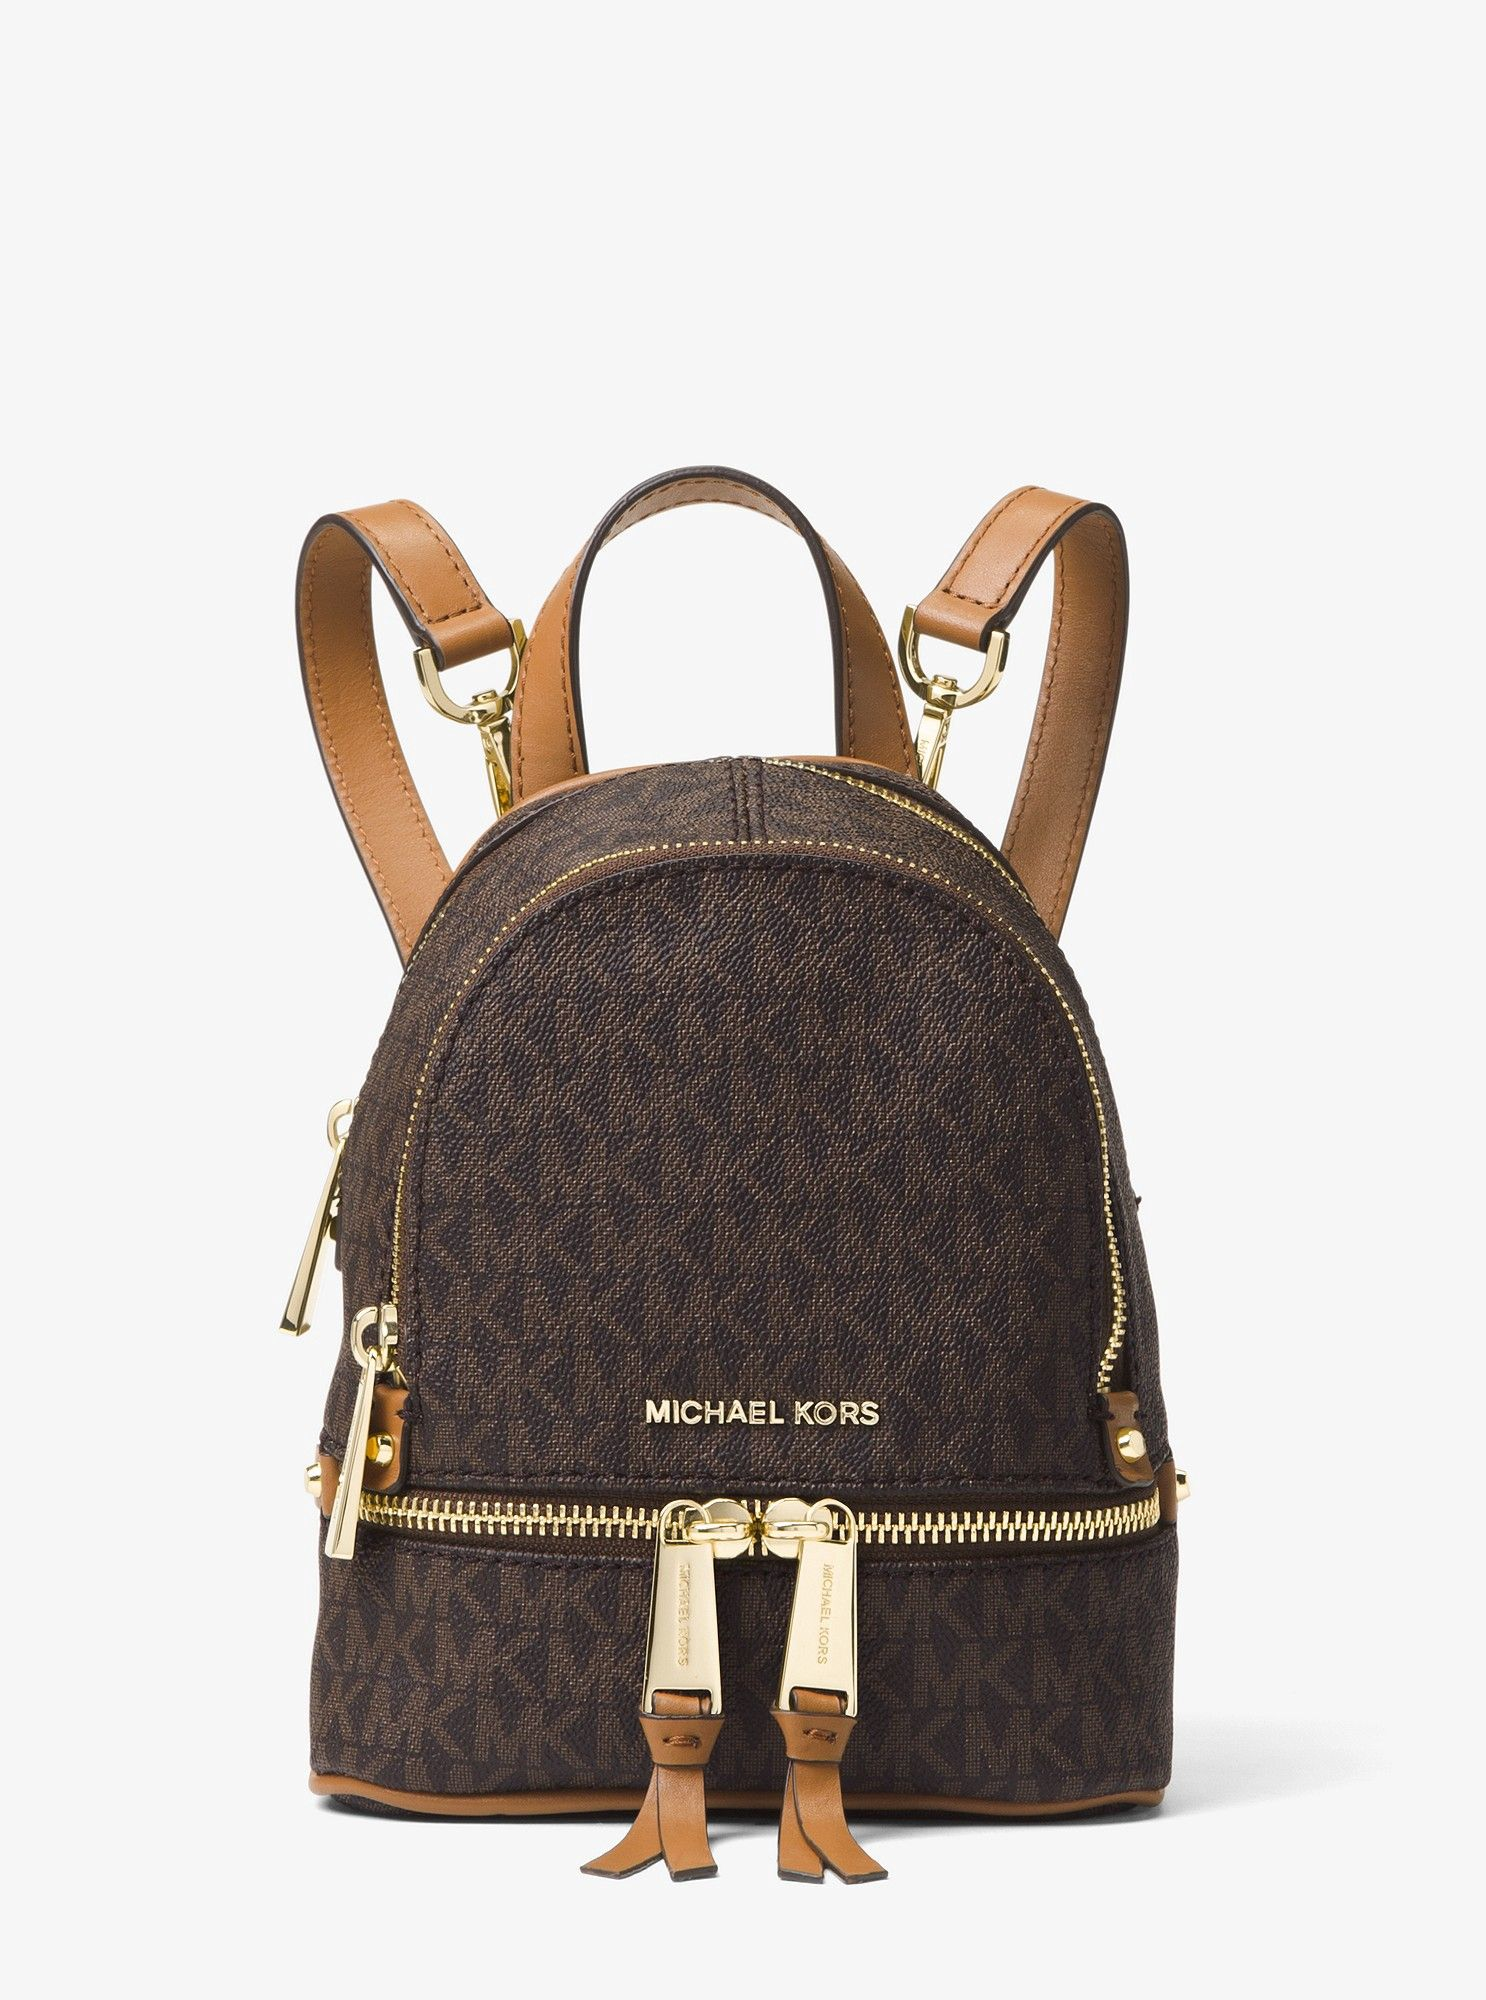 Michael Kors Rhea Mini Logo Backpack - Vanilla   Products in 2019 ... 5087fab580